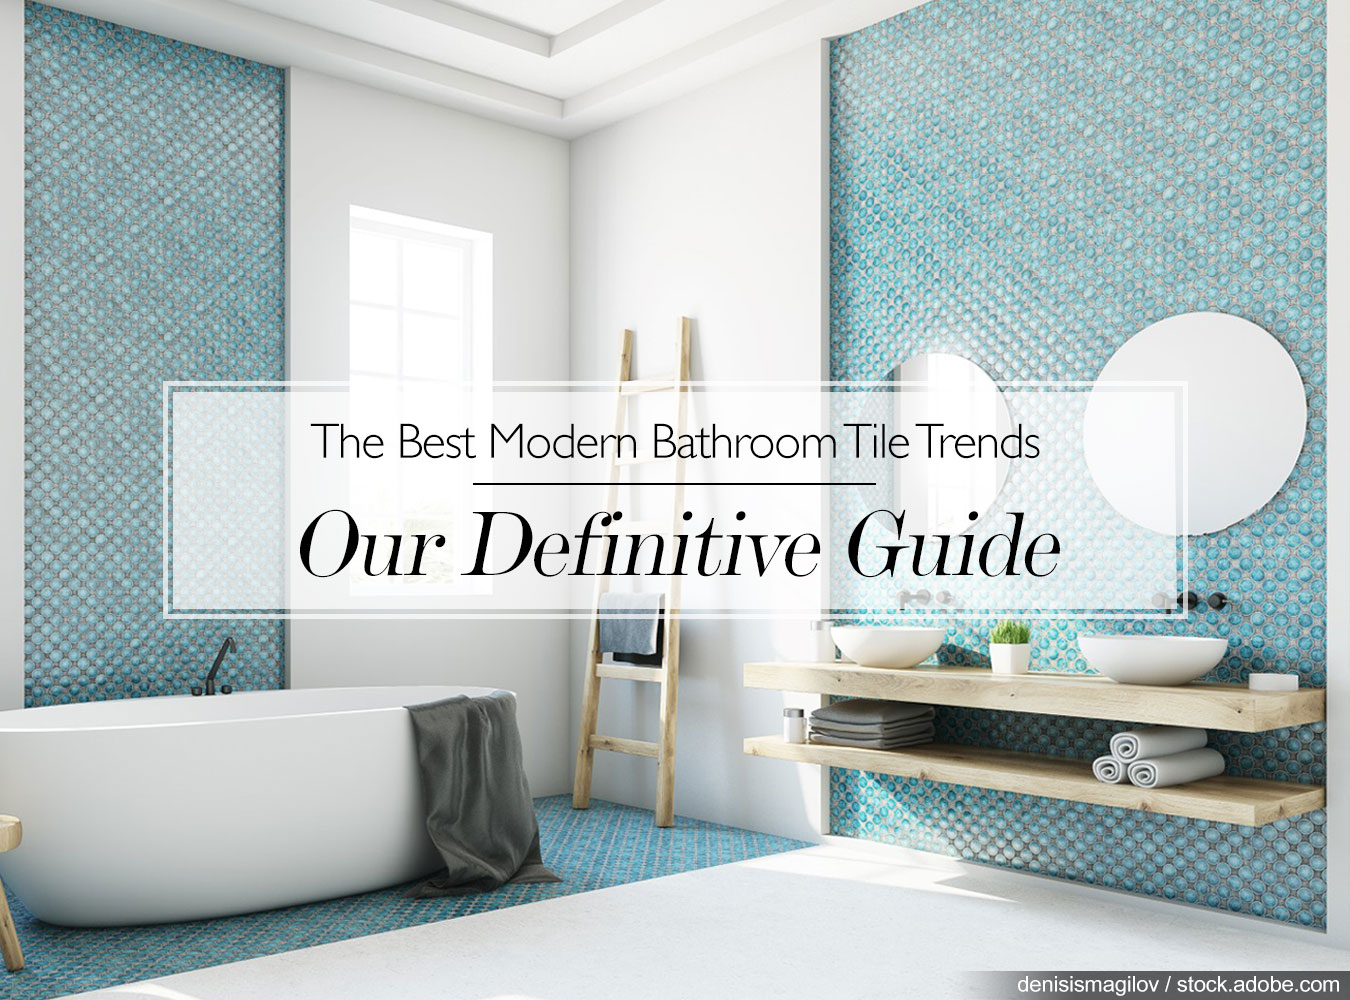 Tile For Bathroom The Best Modern Bathroom Tile Trends Our Definitive Guide